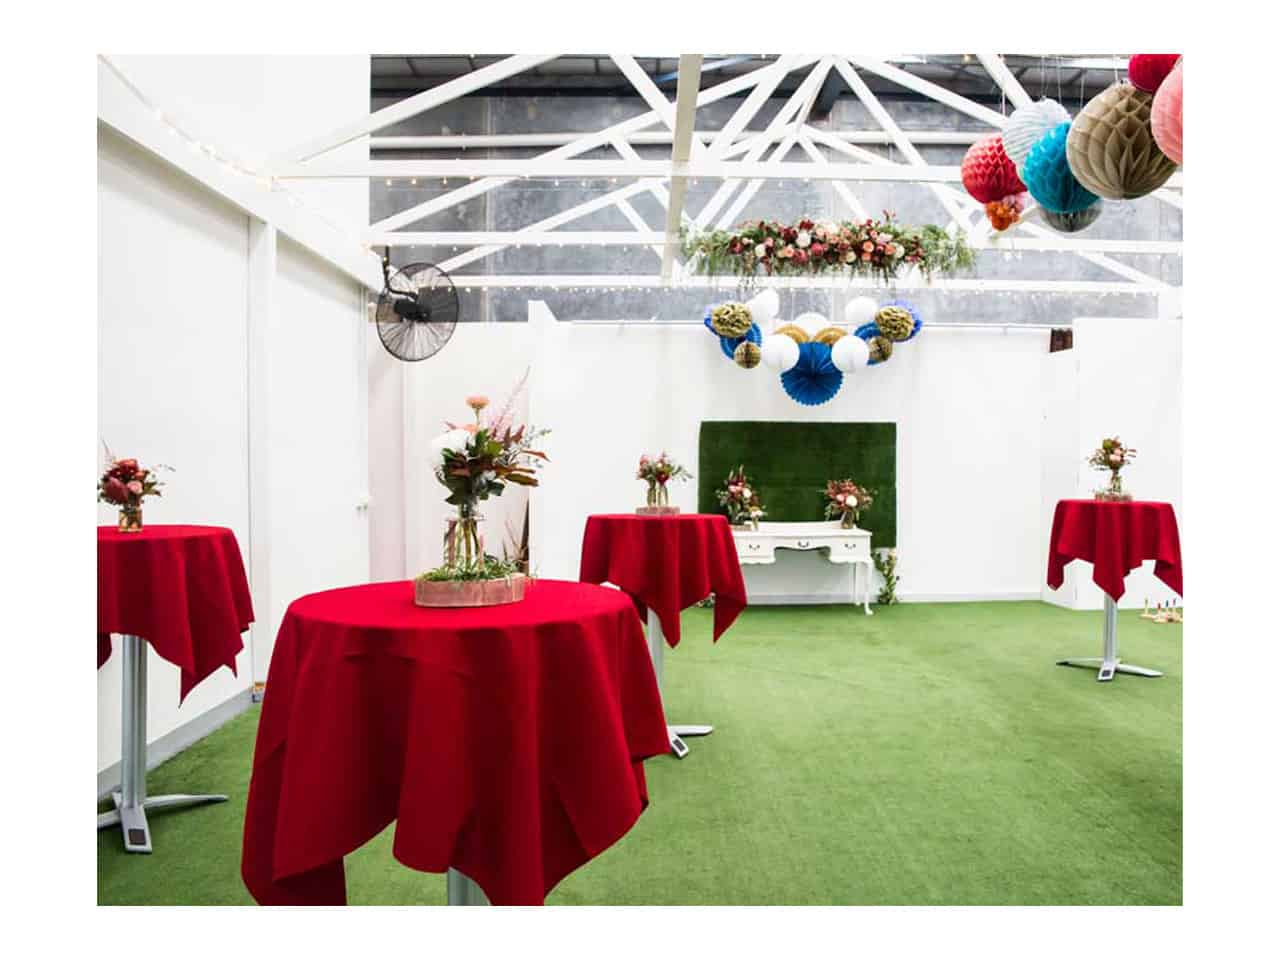 Open space function area with round red tables